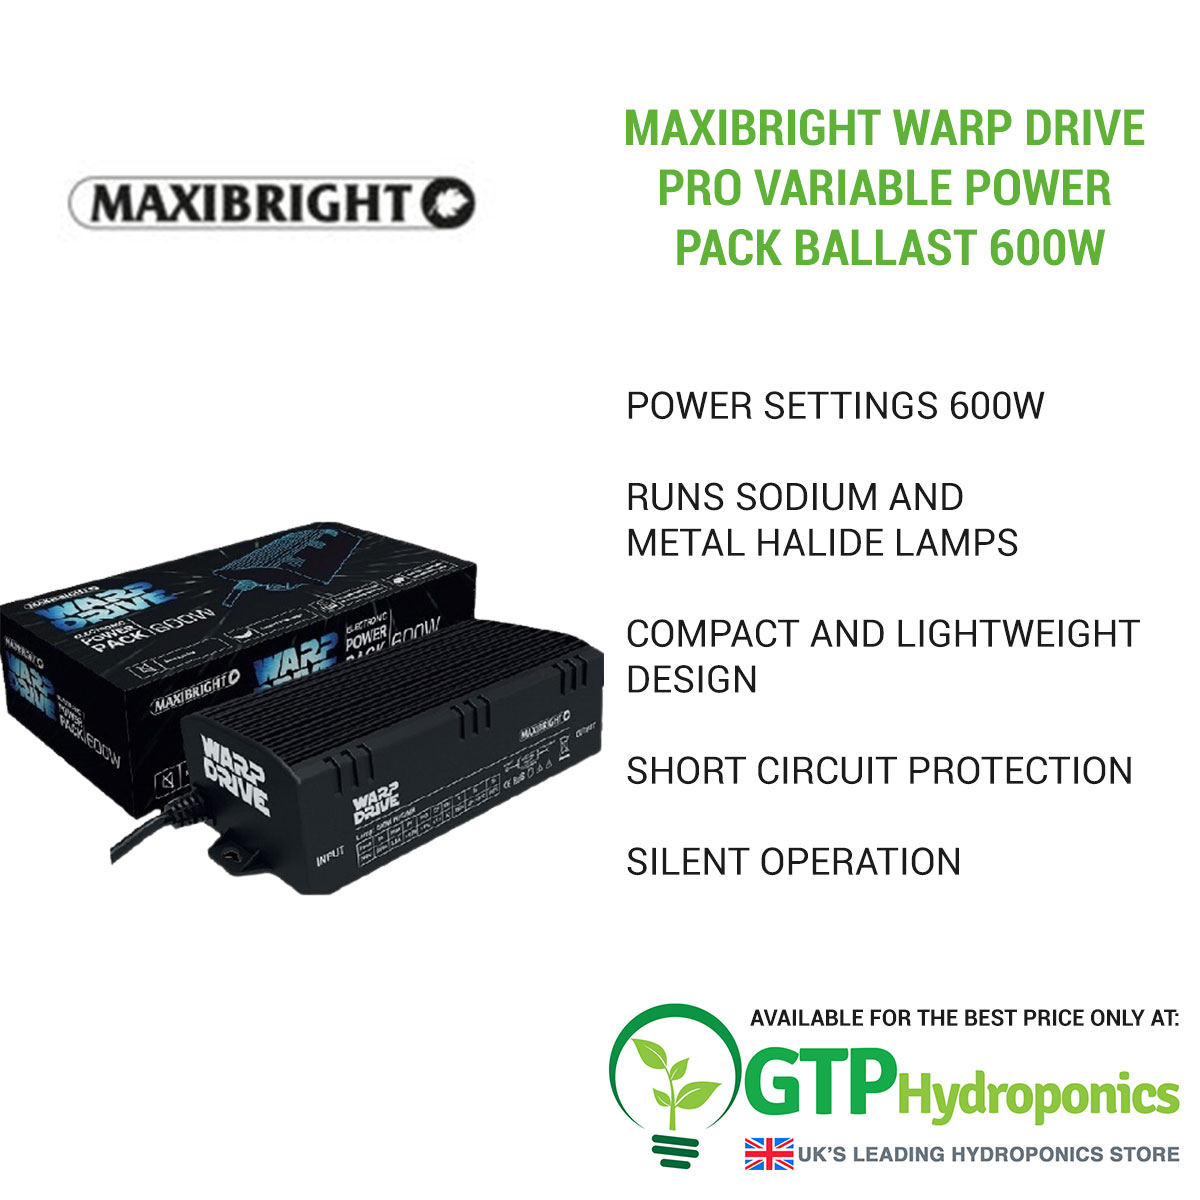 Maxibright Warp Drive Pro Variable Power Pack Ballast 600w overview